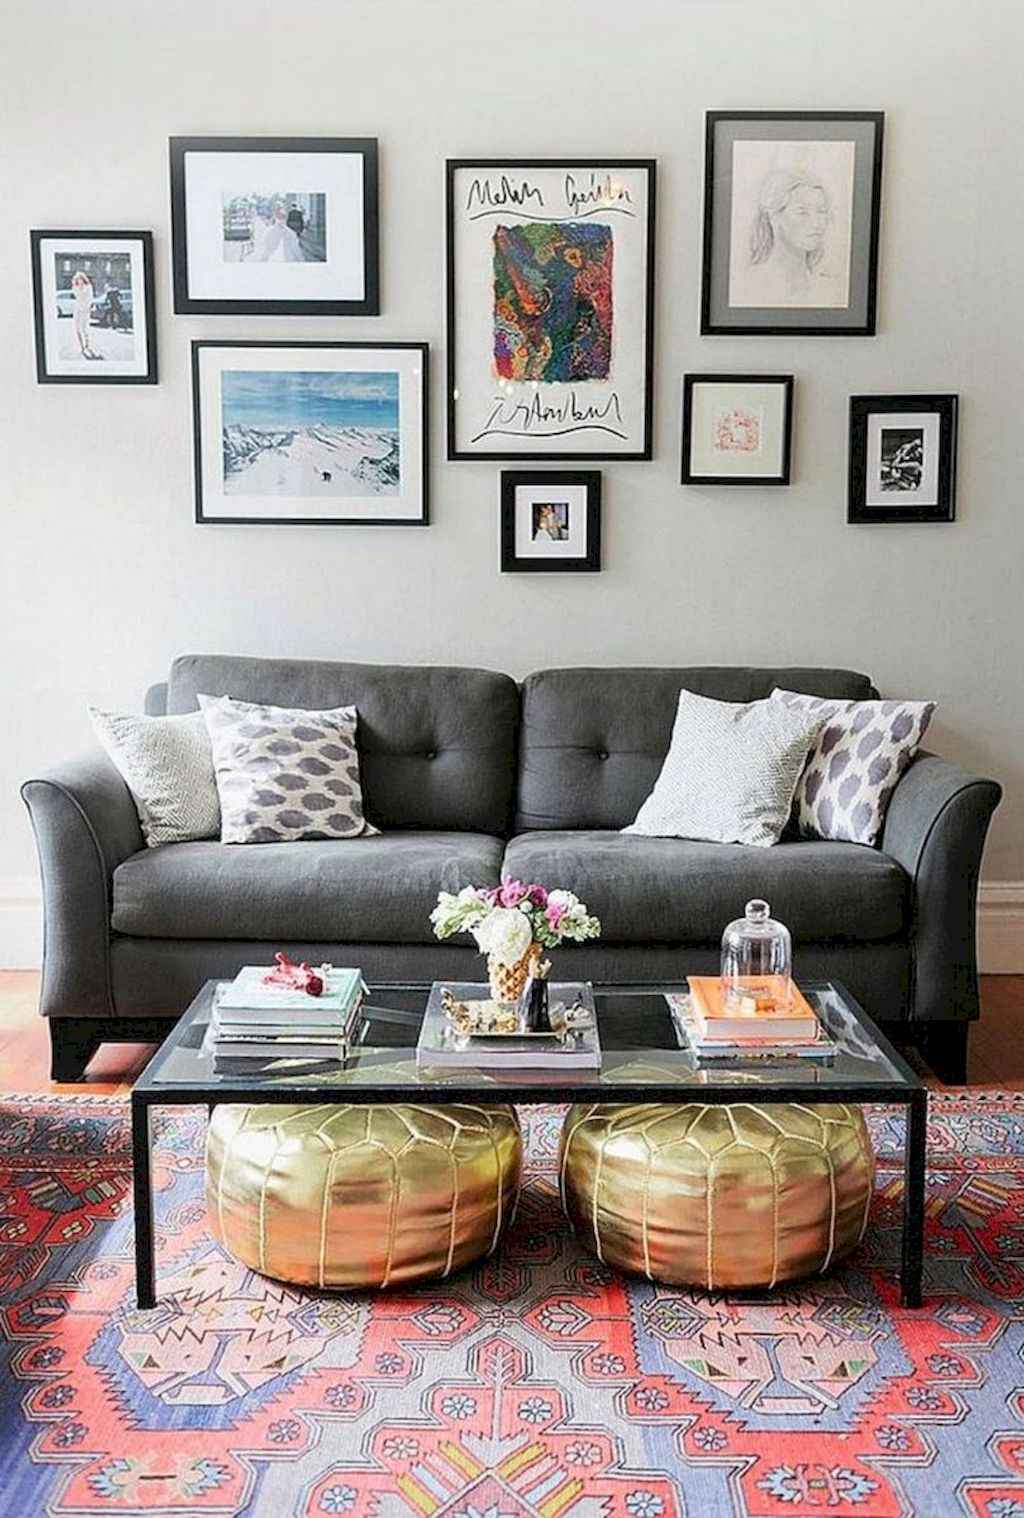 Amazing small first apartment decorating ideas (6)